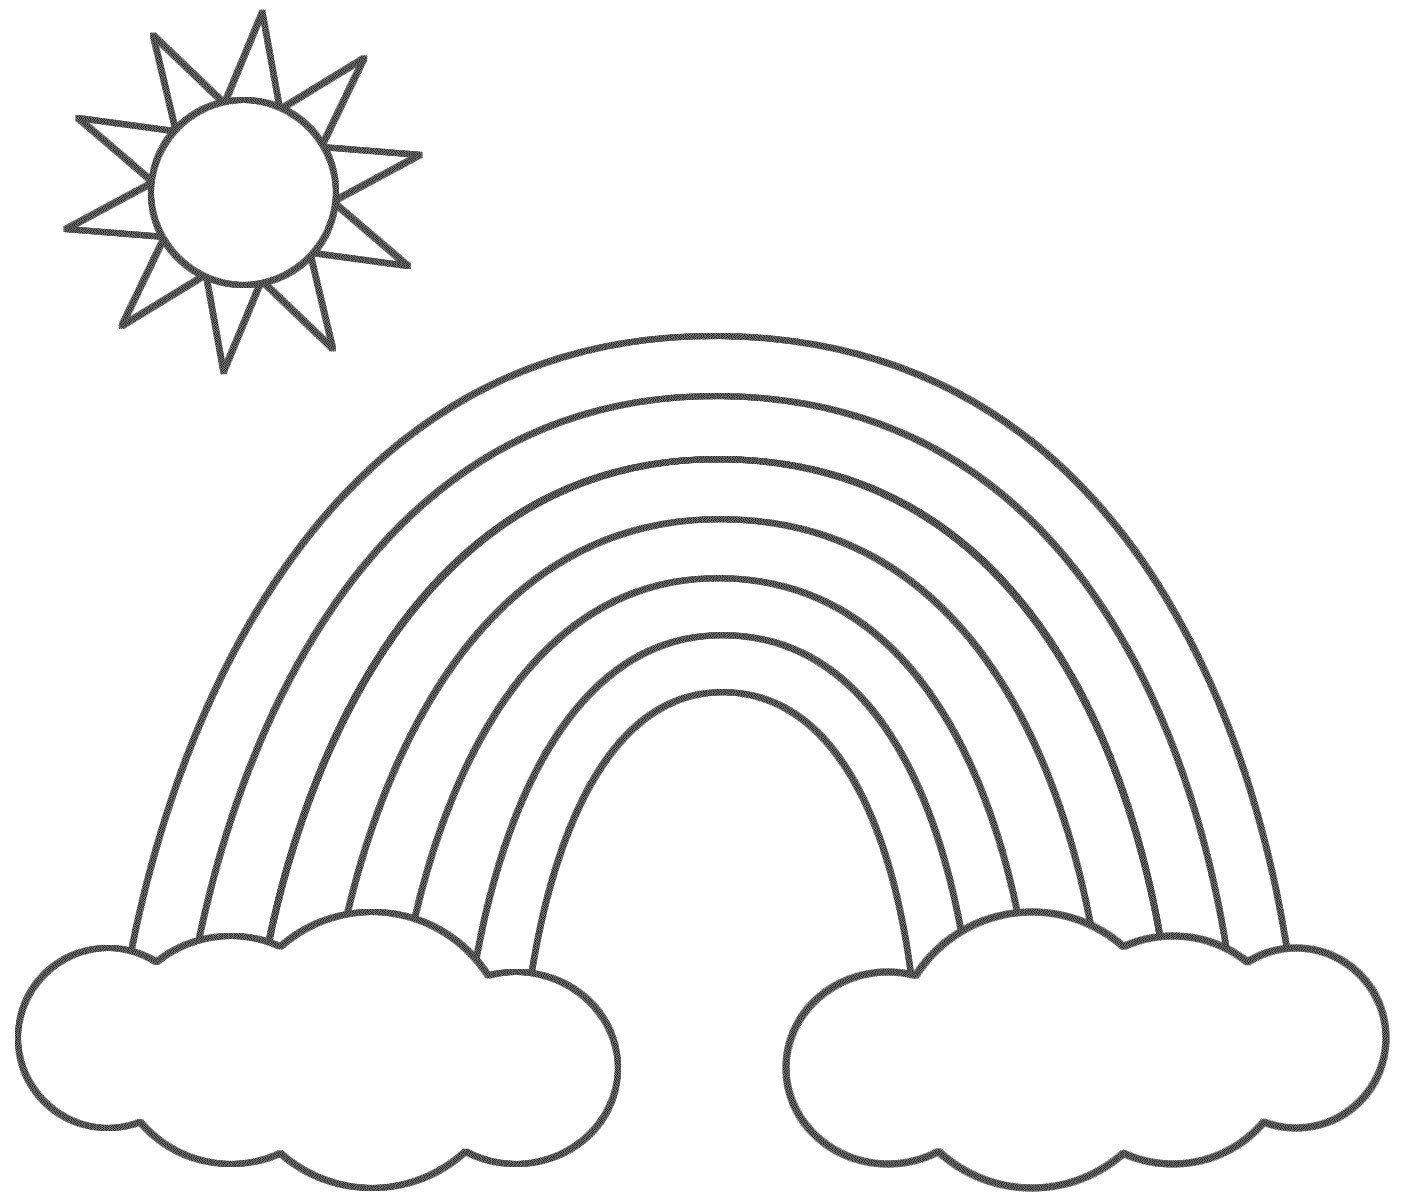 Printable Coloring Pages Create Photo Gallery For Website Kids